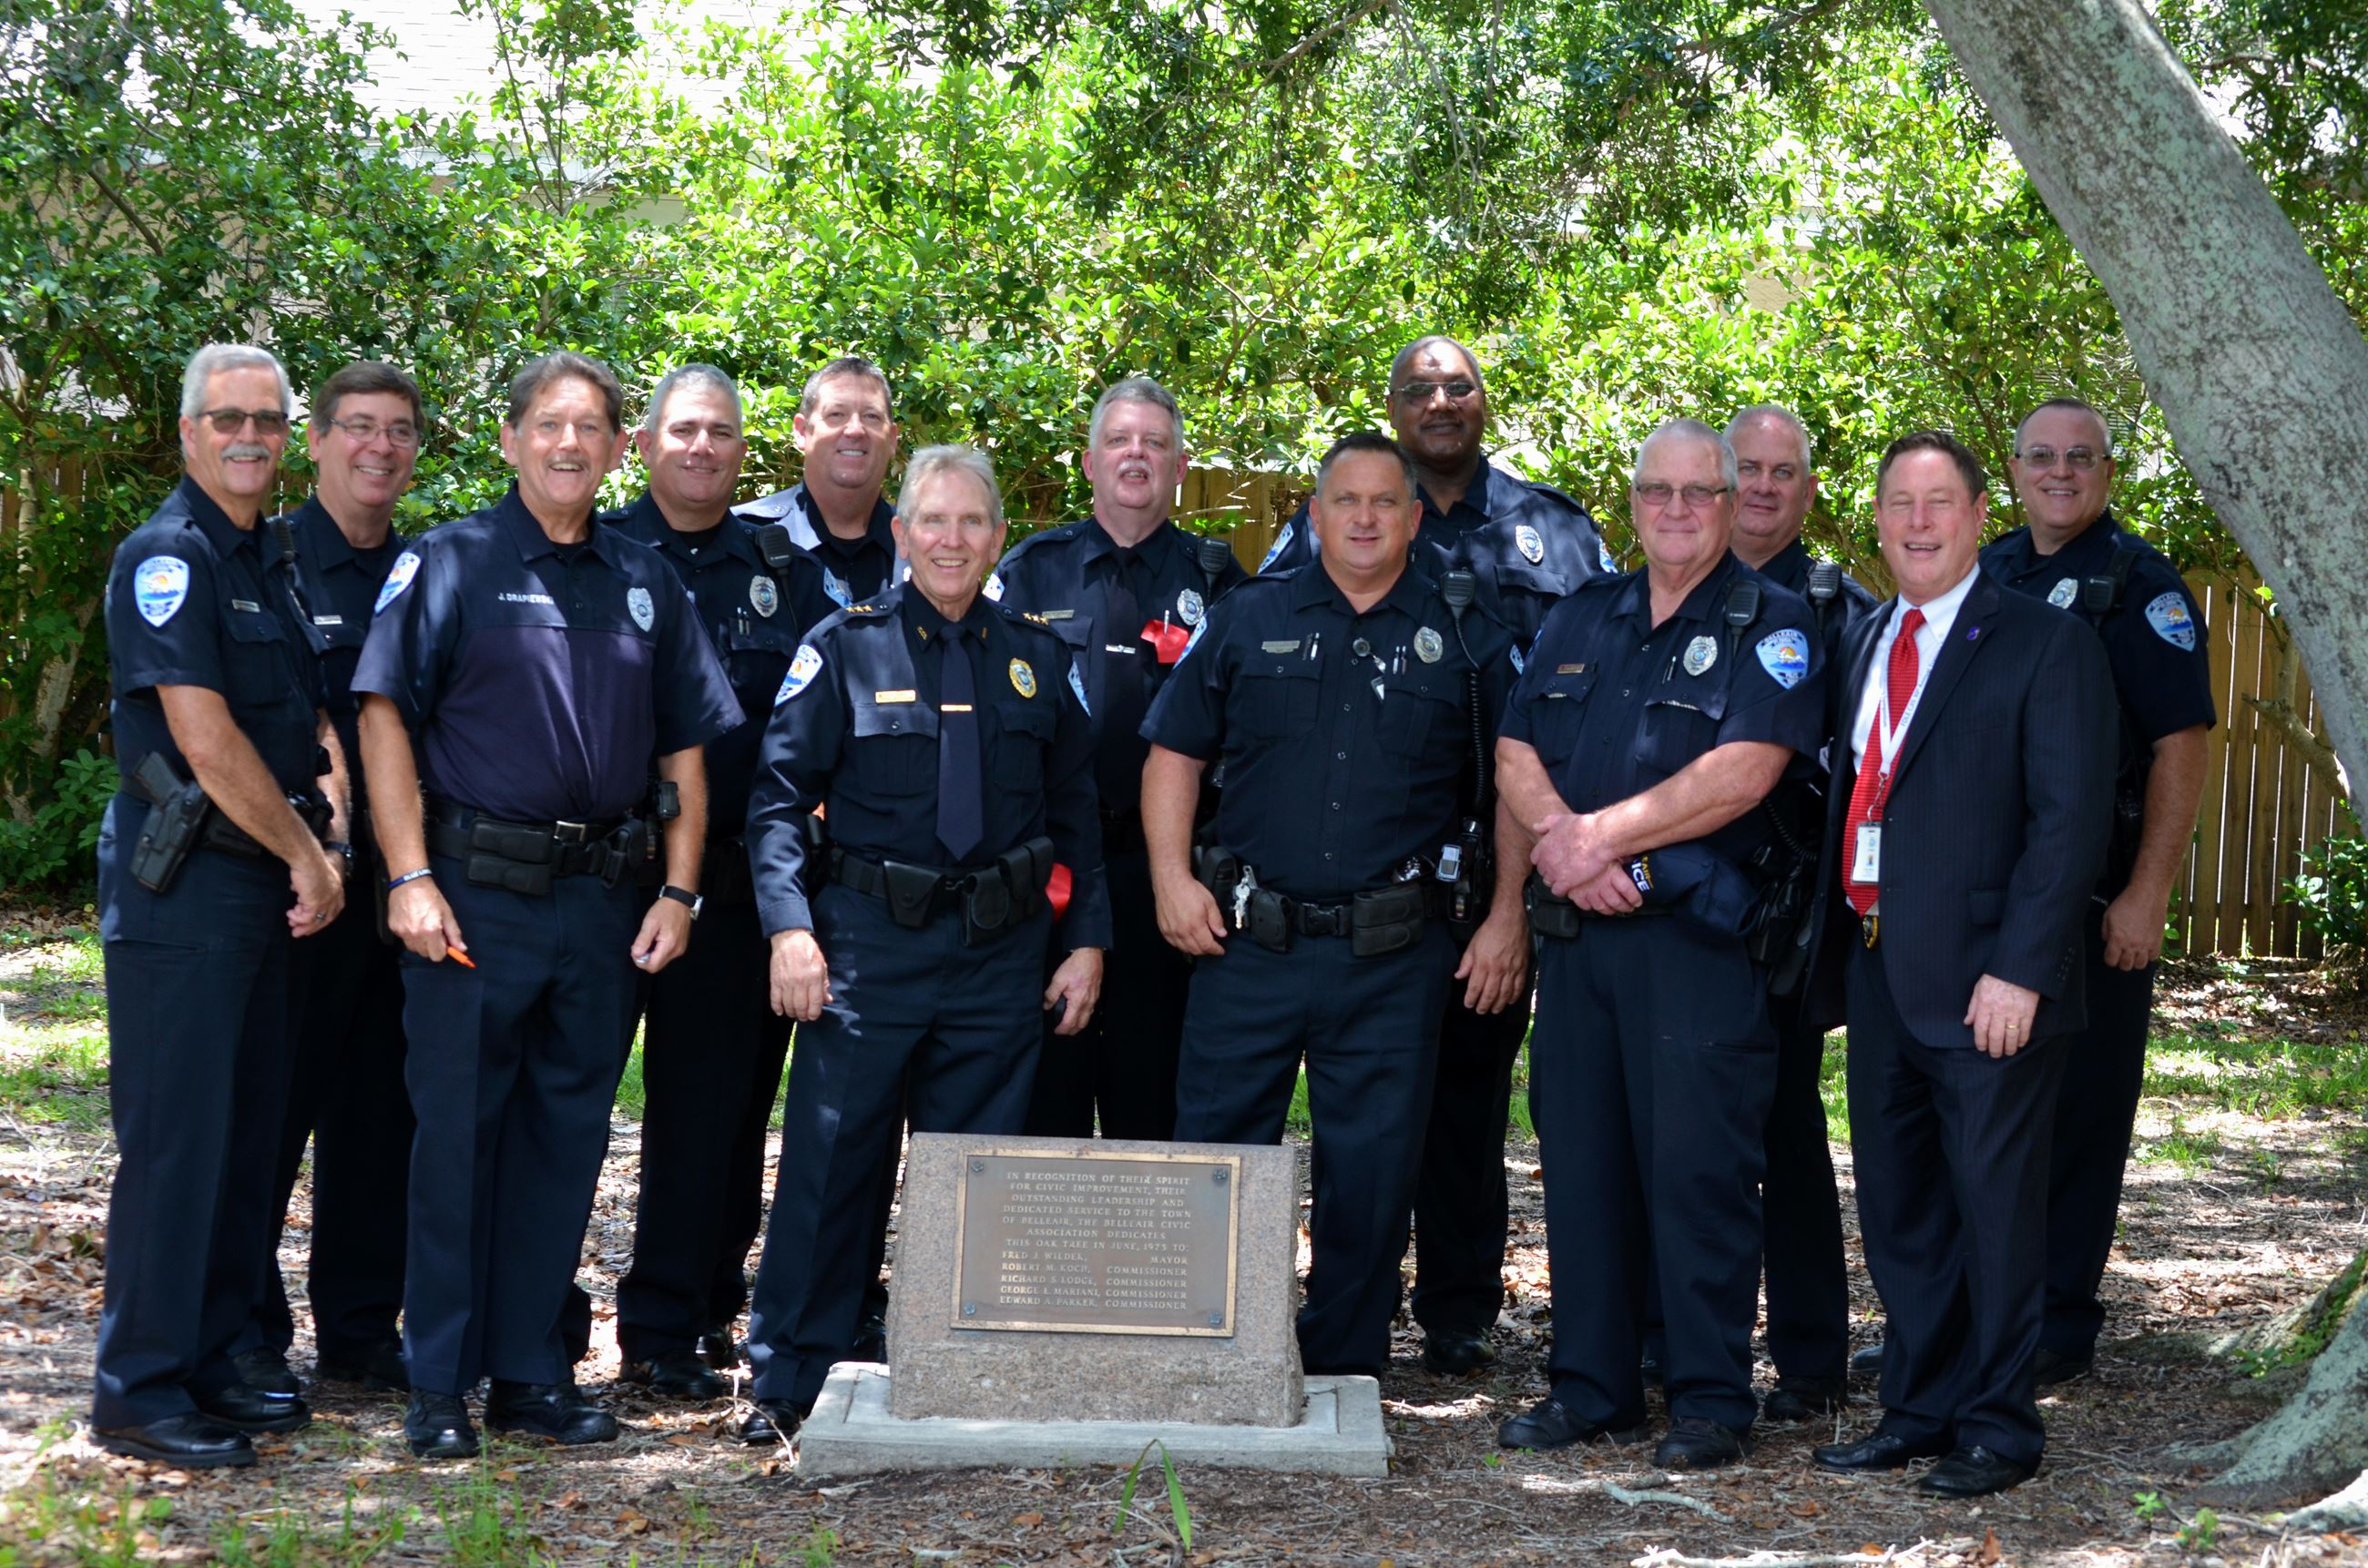 A group of Belleair Police officers in uniform smile in Tackett Park before construction begins.